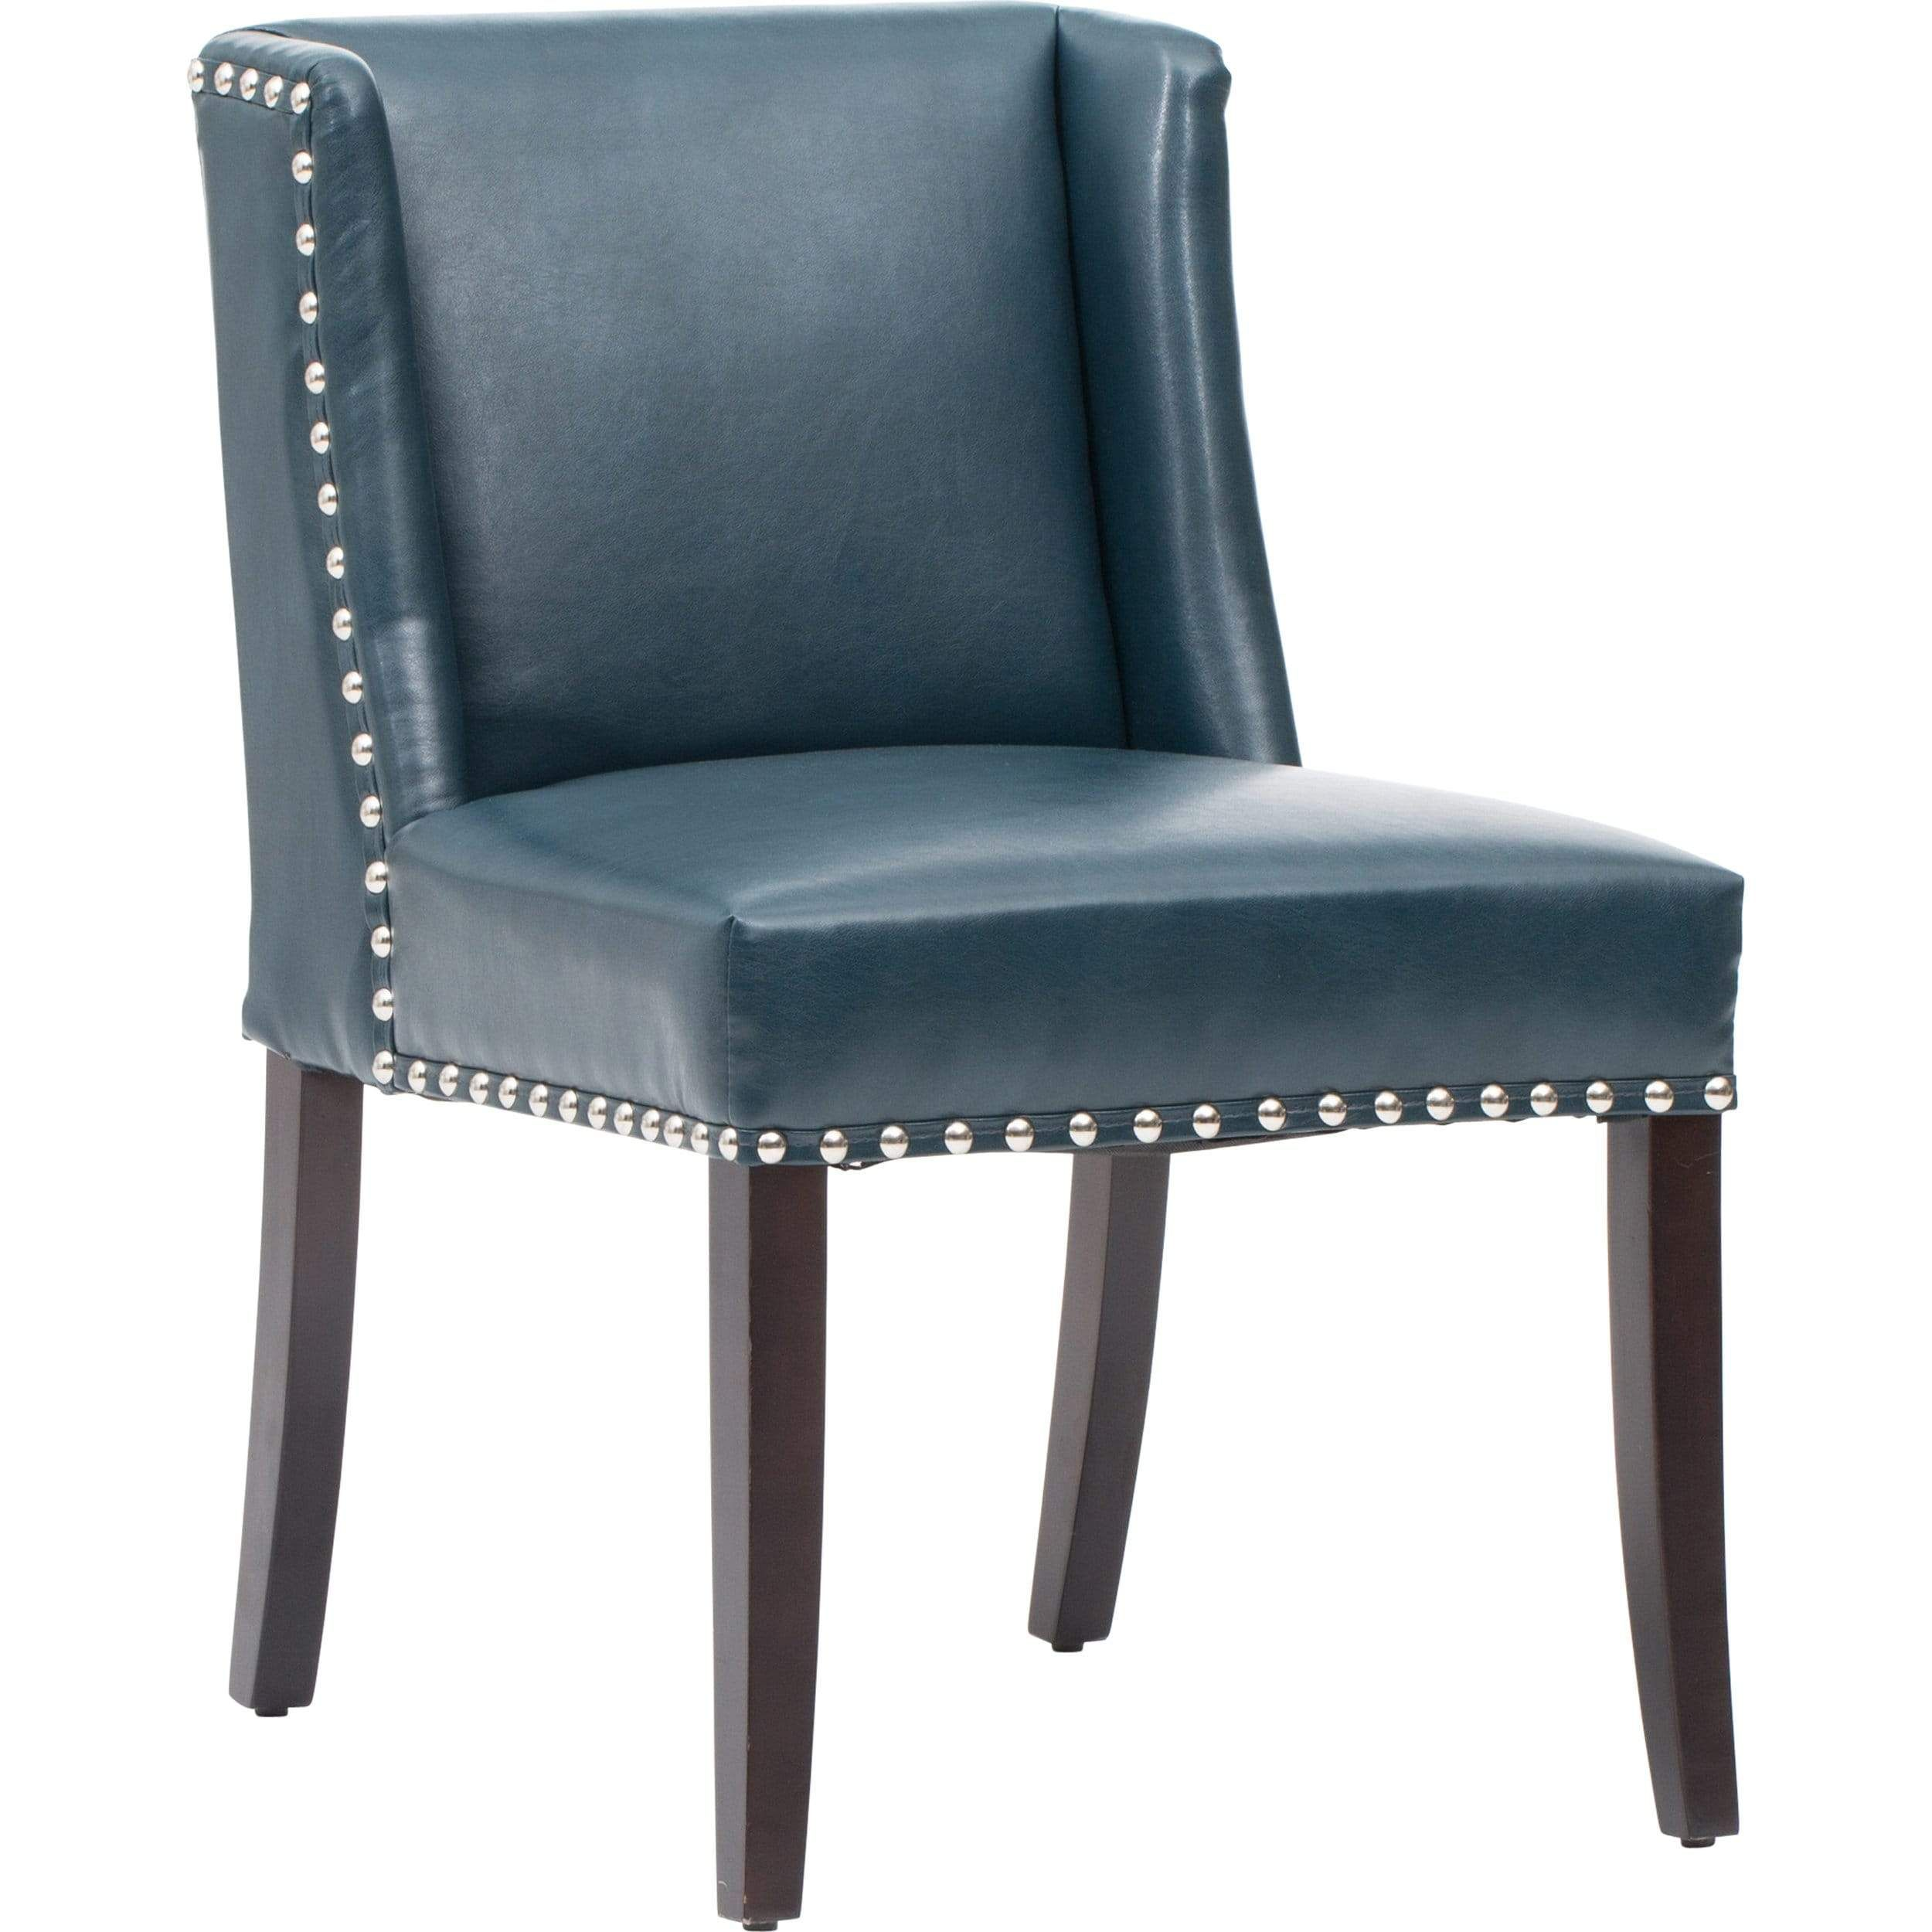 Marlin Leather Dining Chair Blue Set Of 2 In 2021 Leather Dining Chairs Dining Chairs Leather Dining Room Chairs